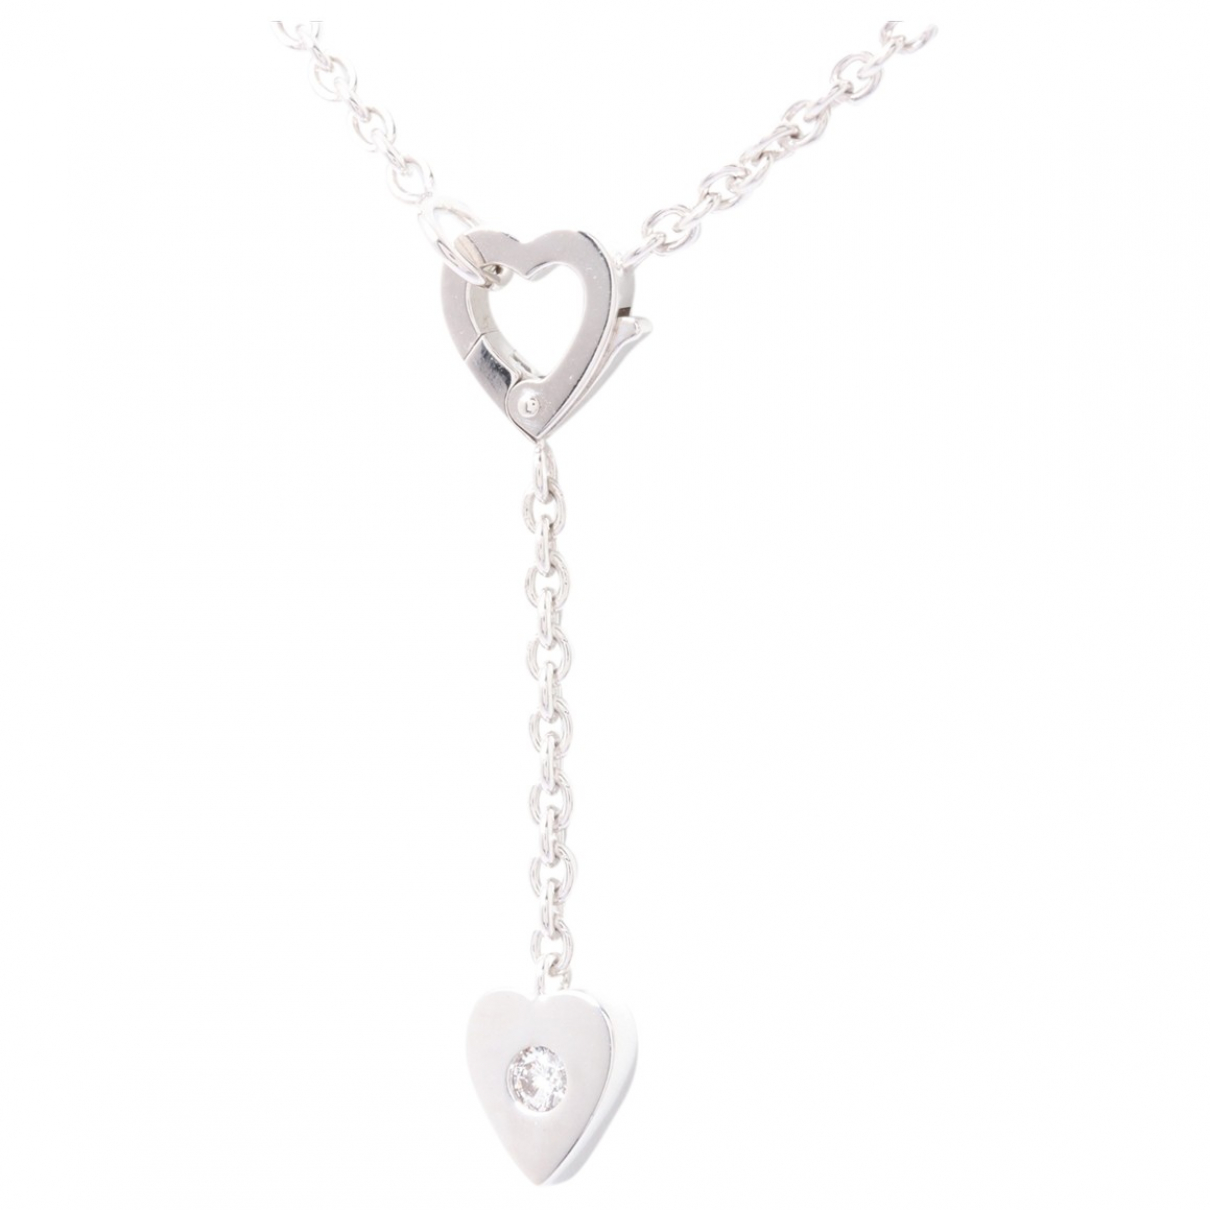 Cartier N Silver White gold necklace for Women N